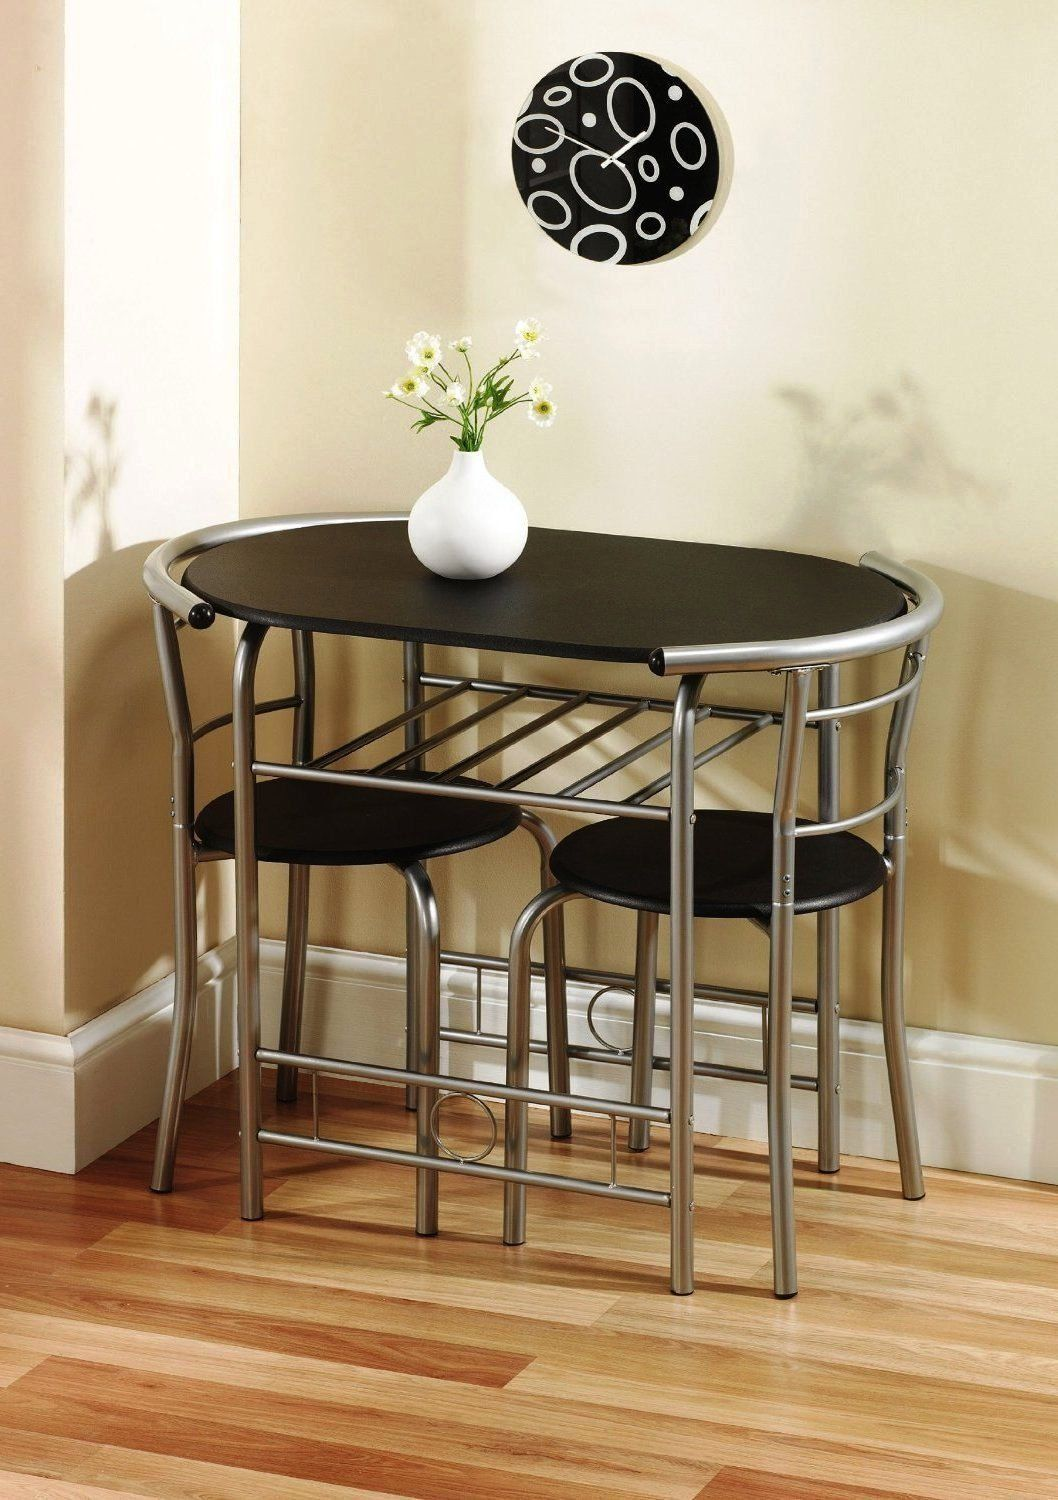 Krasavic 3 Piece Kitchen Dining Table Set For 2 Wood Top Metal